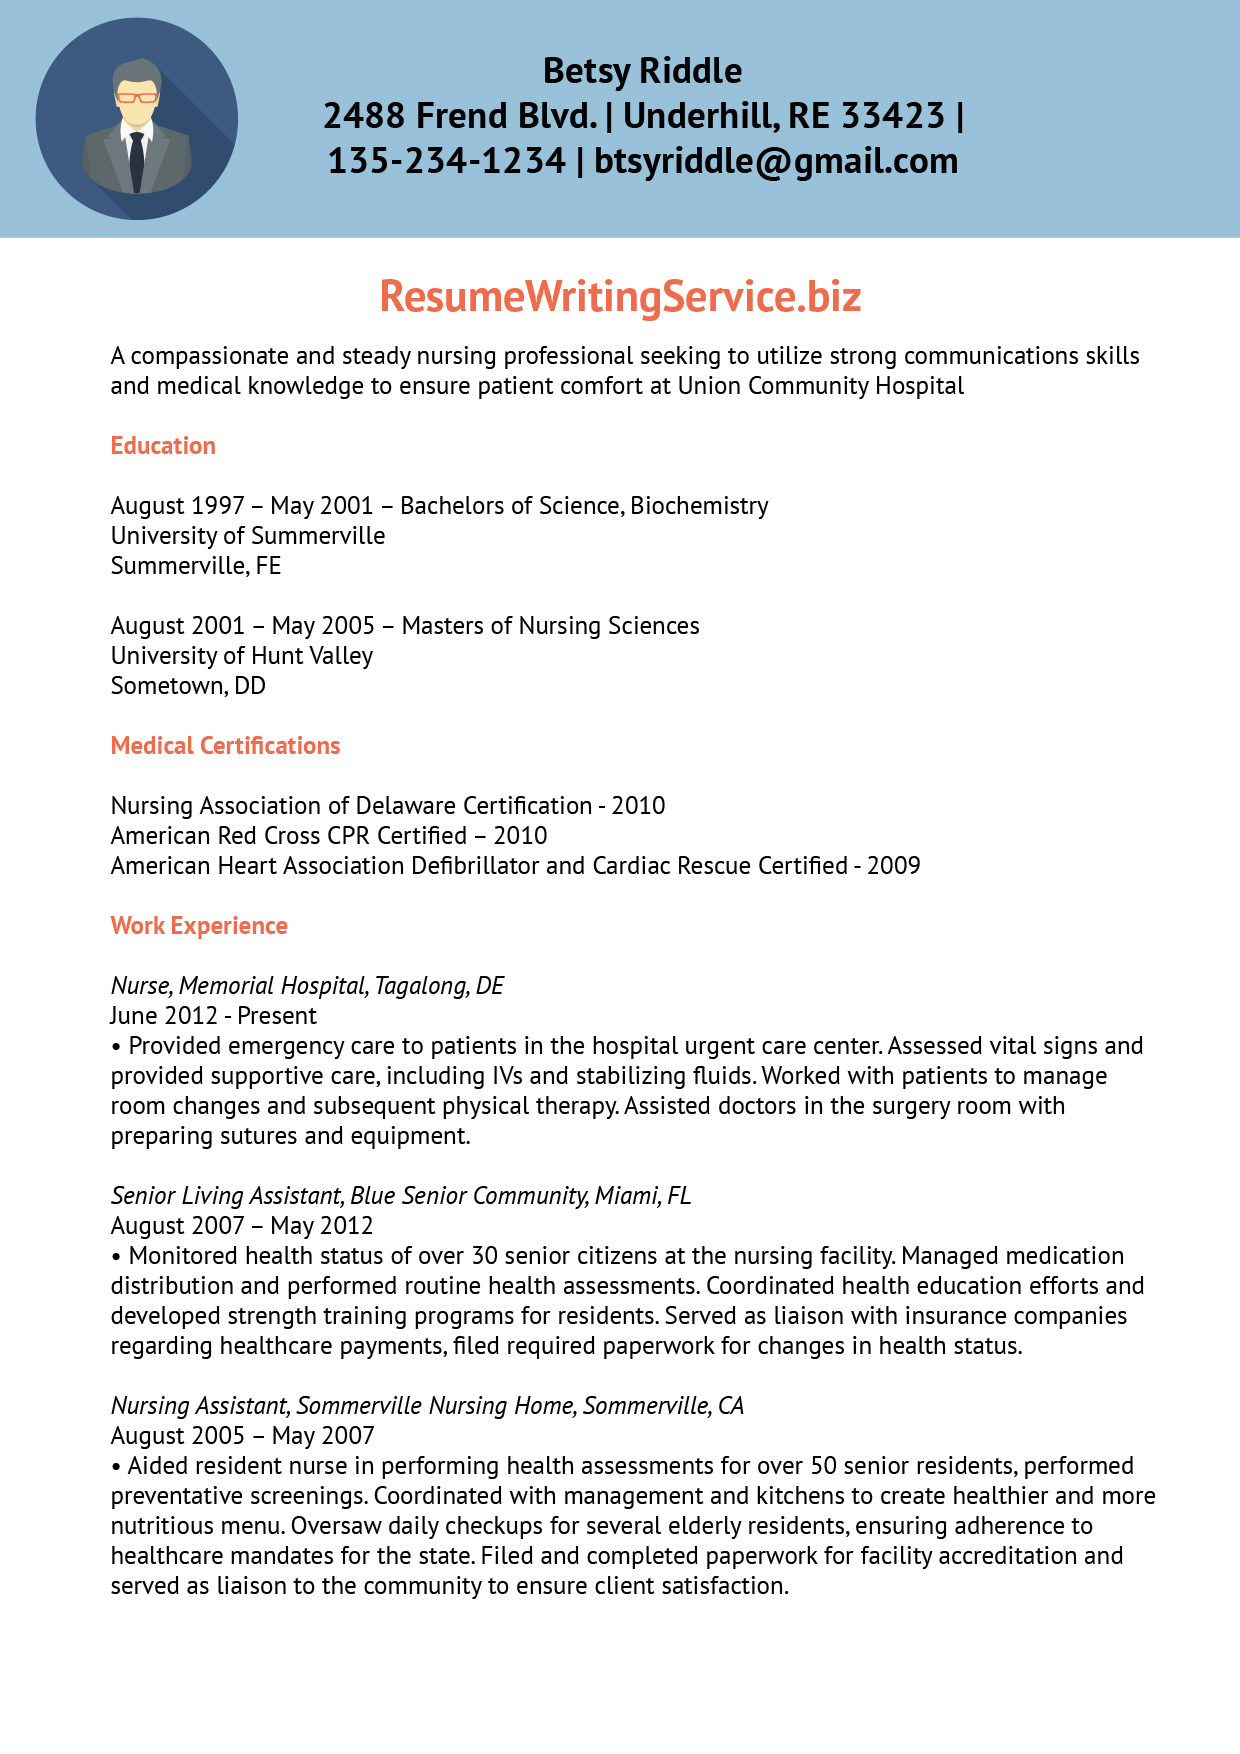 sample nurse resume cases handled resume builder sample nurse resume cases handled sample nurse practitioner resume cvtips and cna resume cover letter